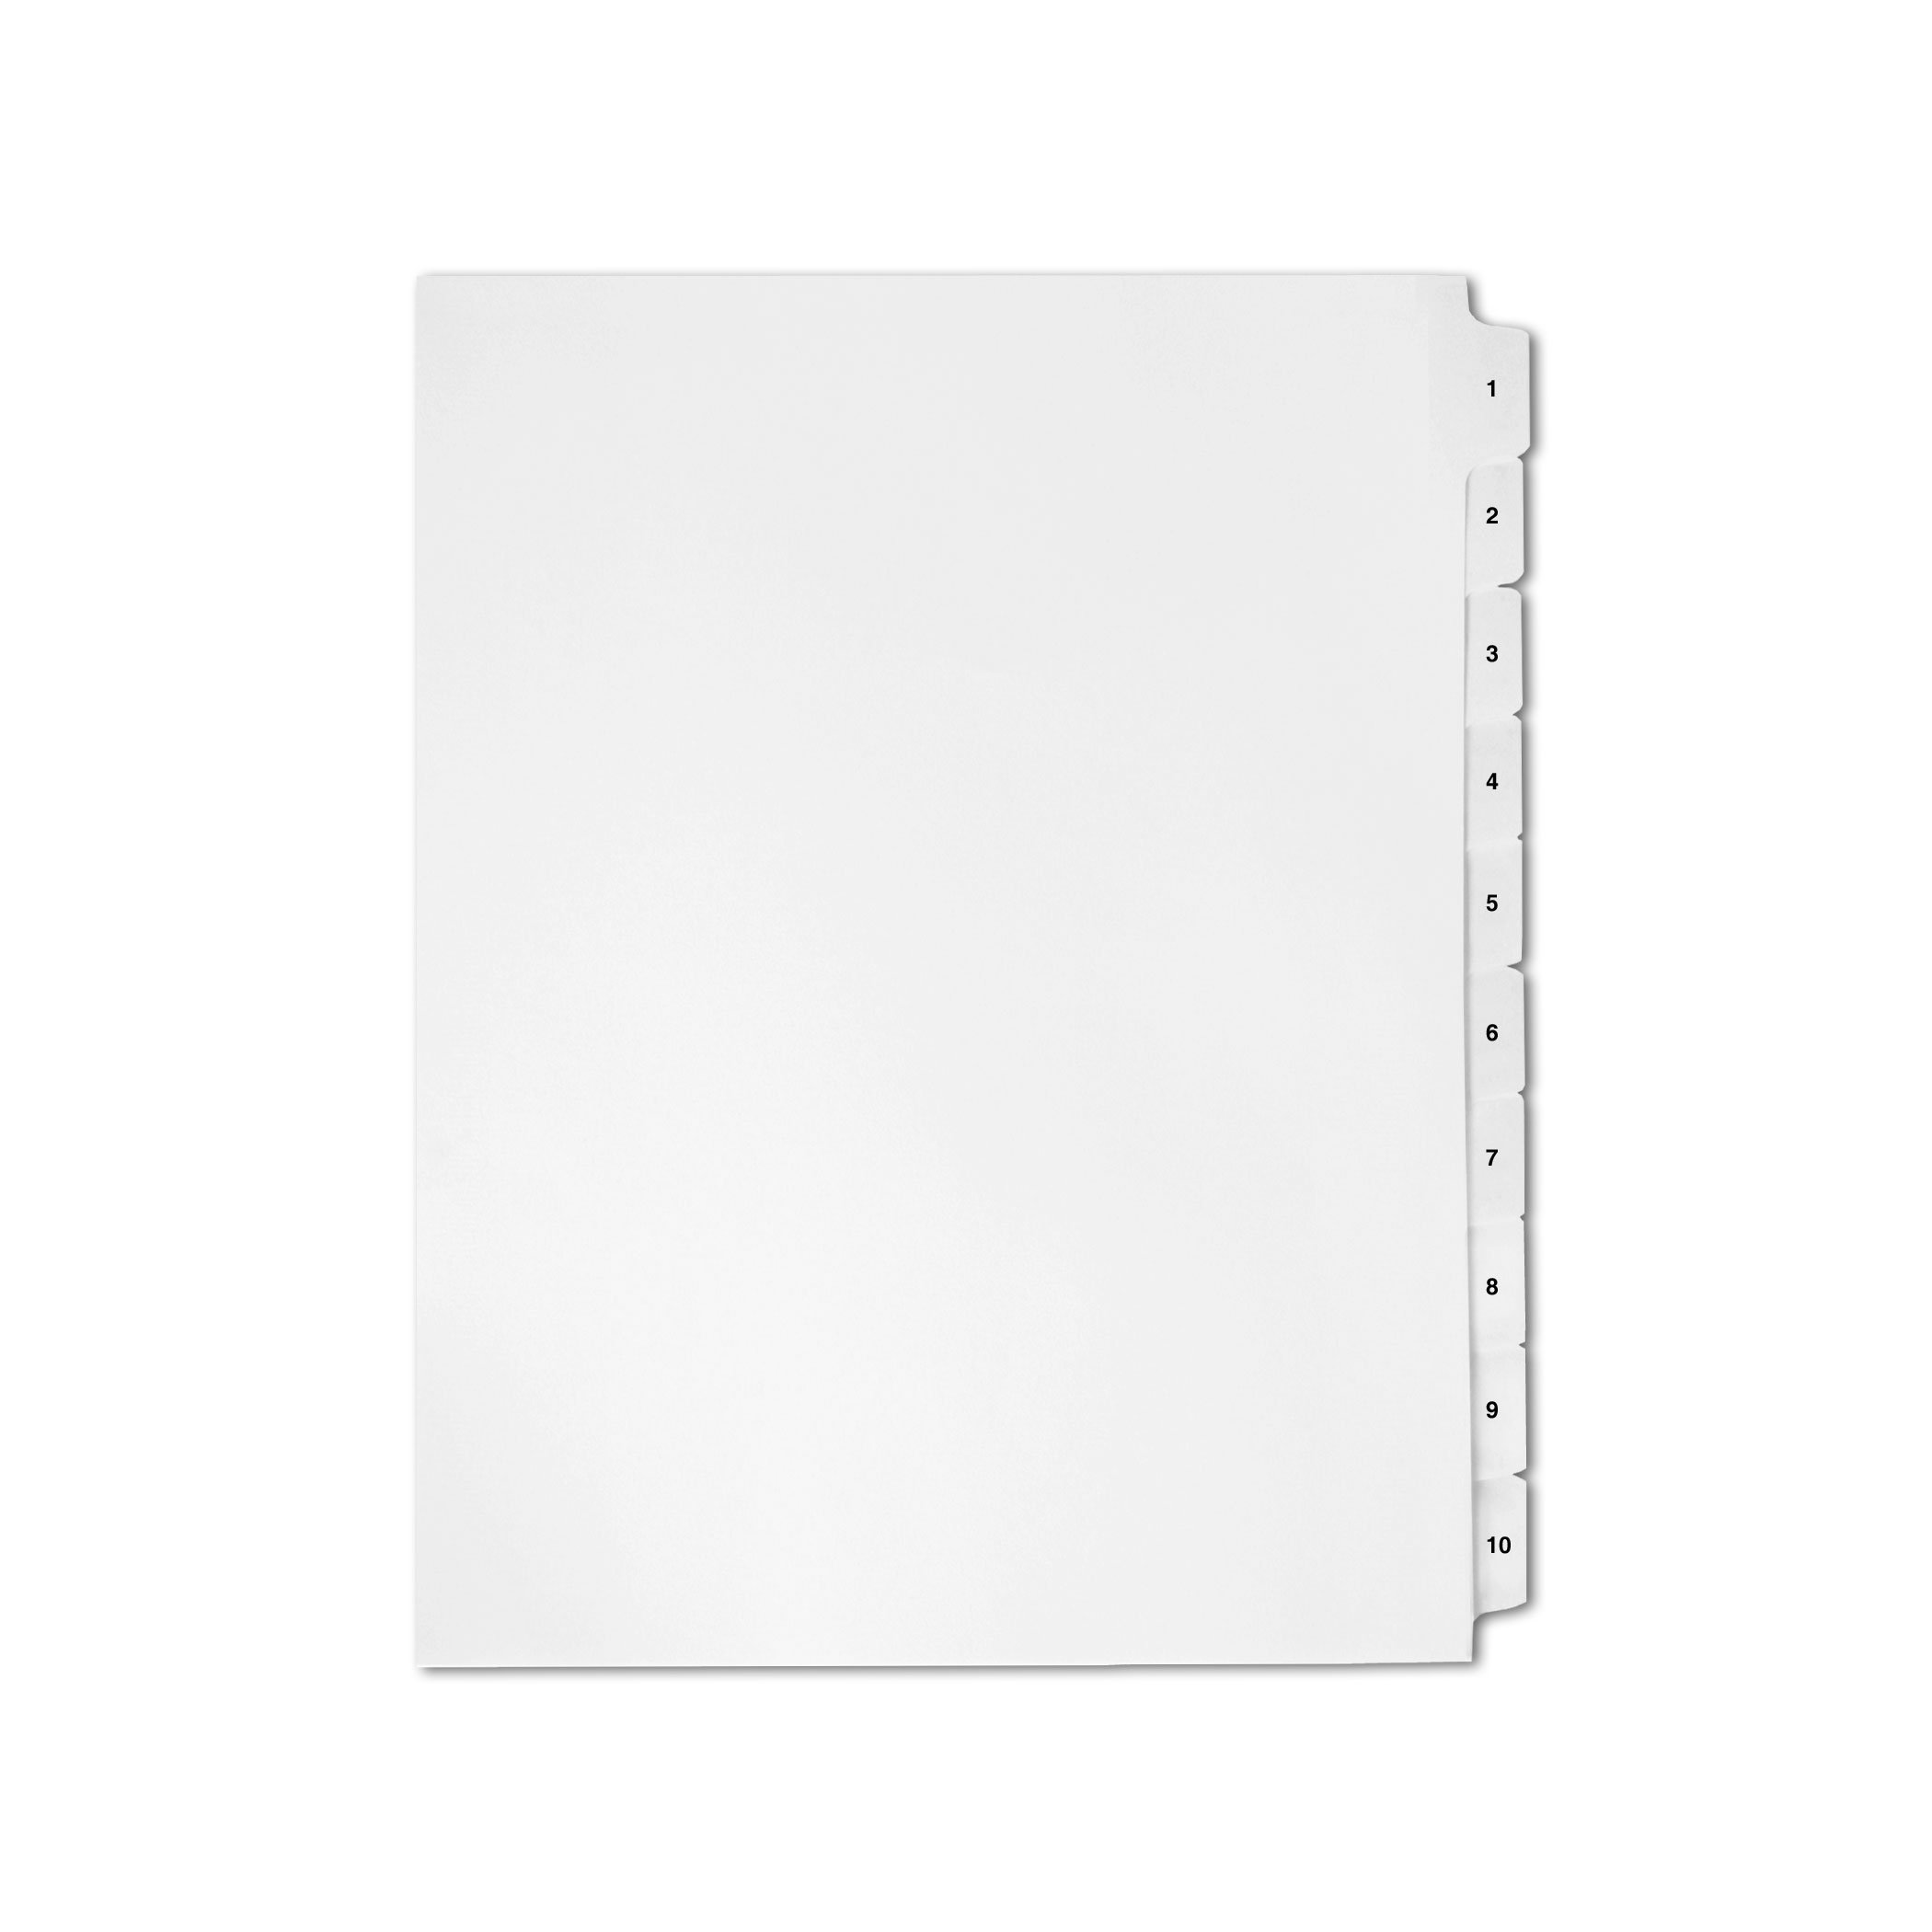 AMZfiling Numbered Side Tab Index Dividers 1-10, Compatible with Avery- 10 Tabs, Collated, Letter Size, White (20 Sheets/pkg)